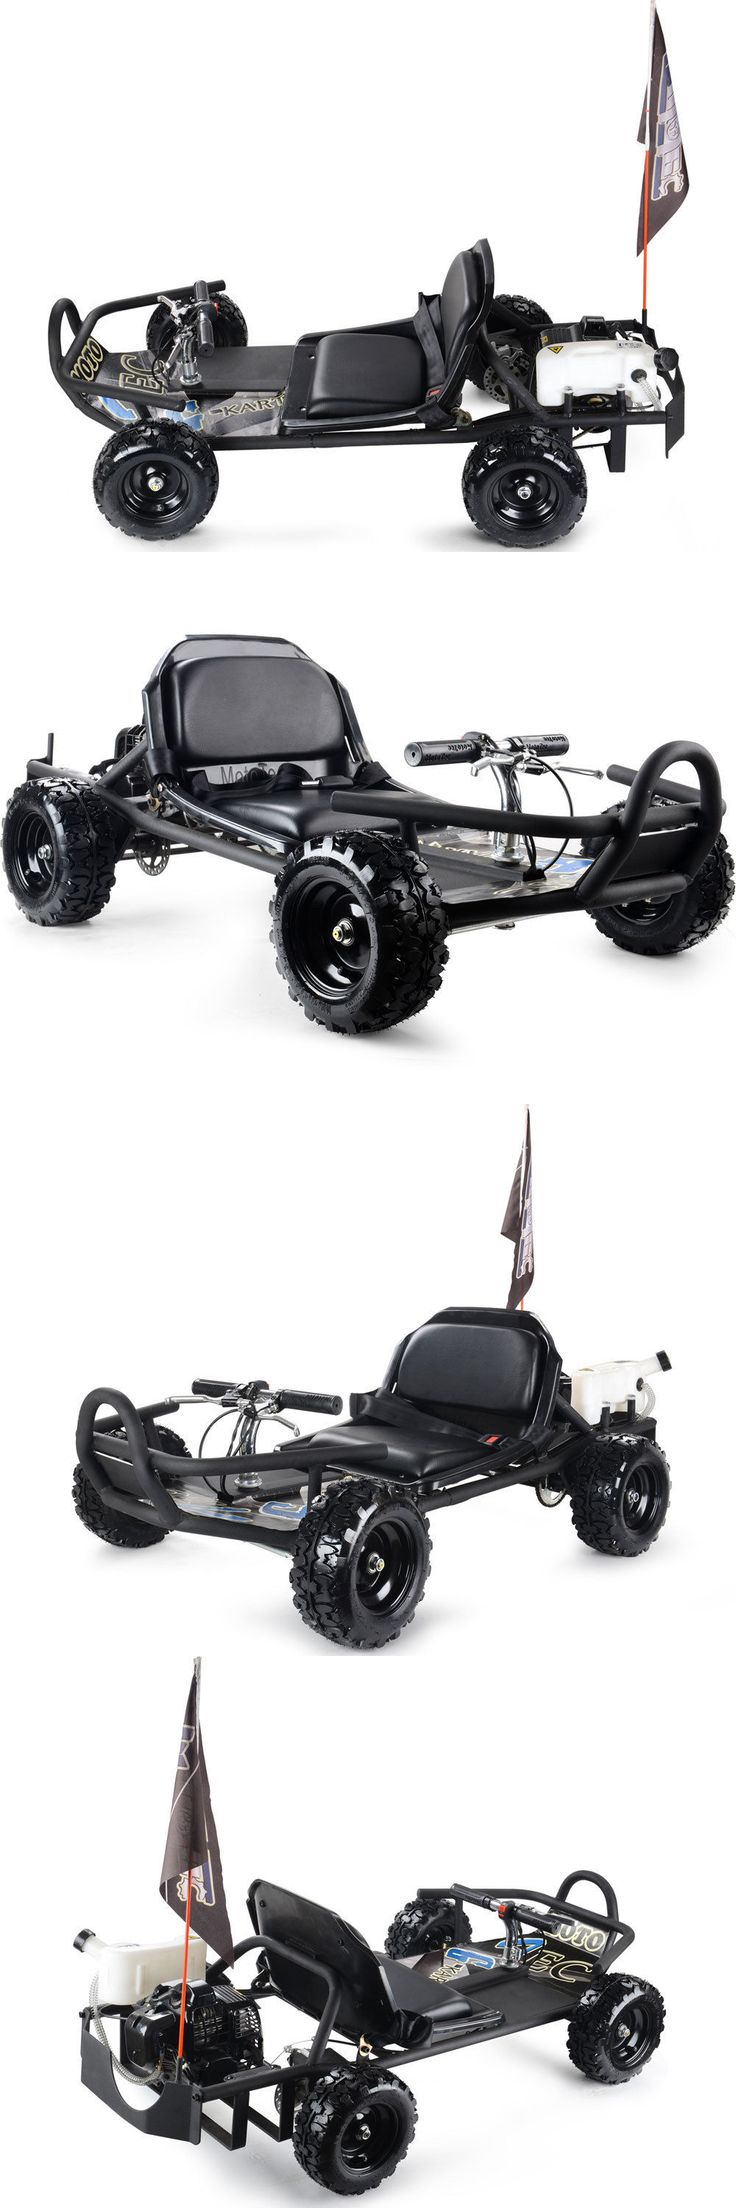 Complete Go-Karts and Frames 64656: New Fast Pull Start Gas Go Cart Off Road Kids Scootercrew Black 2 Stroke Petrol BUY IT NOW ONLY: $629.0